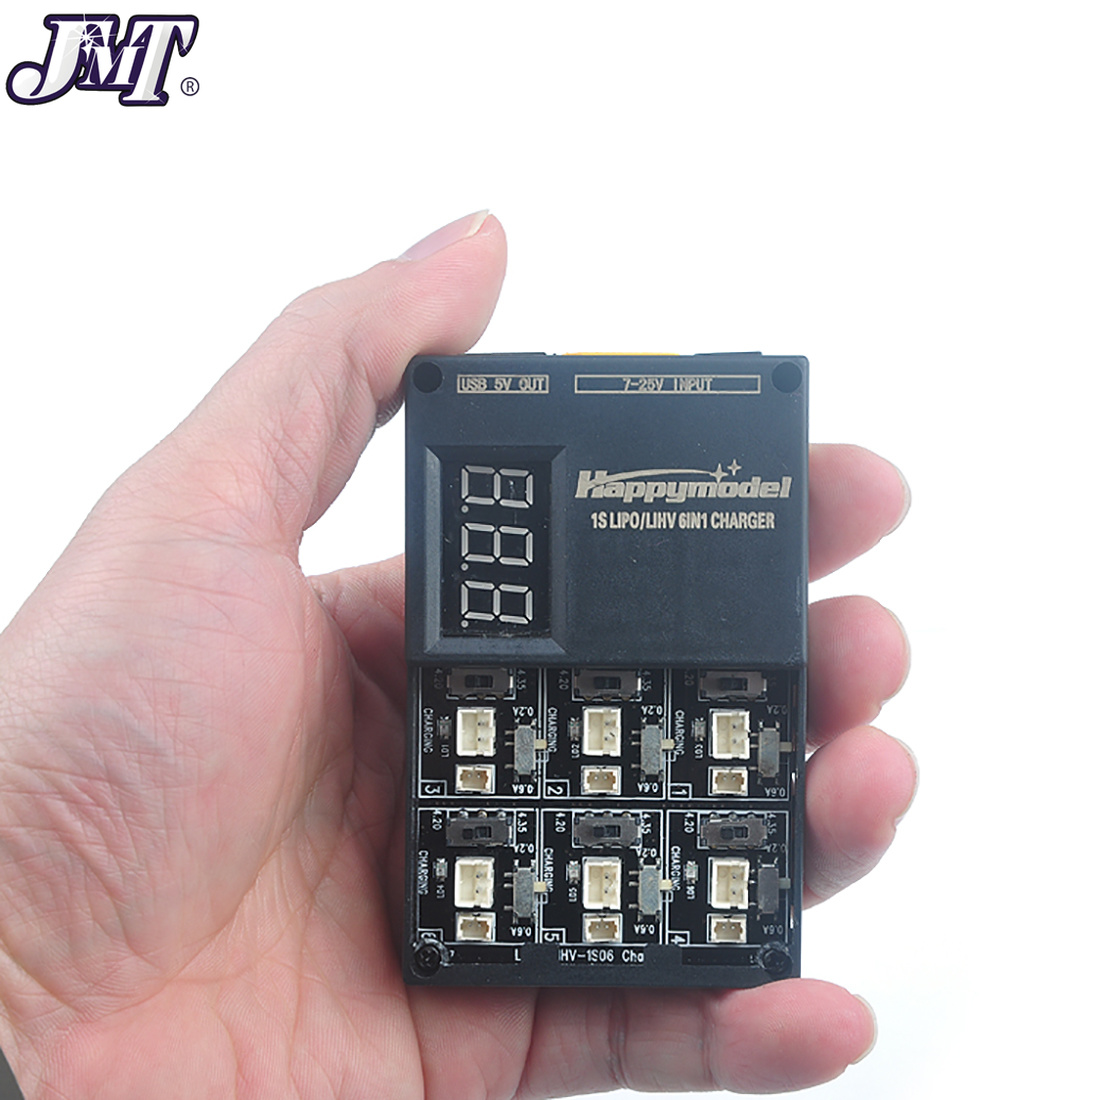 6 in 1 3.7V 3.8V 1S Lipo LiHv Battery Charger Board for Tiny 6 7 QX65 Mobula7 Mini RC Quadcopter FPV Racing Drone Bwhoop Parts image